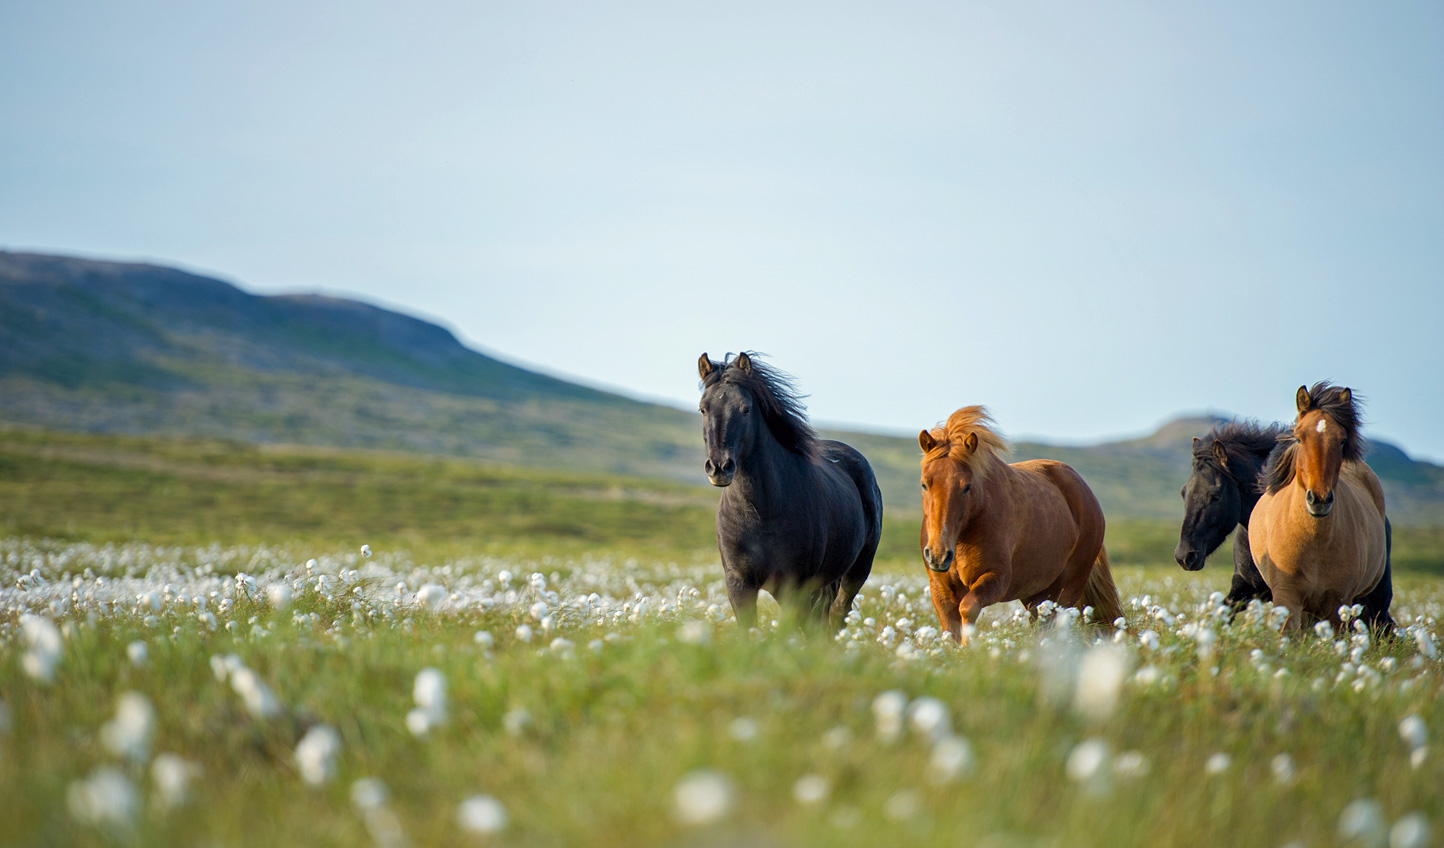 Saddle up and horseback across the Icelandic landscapes